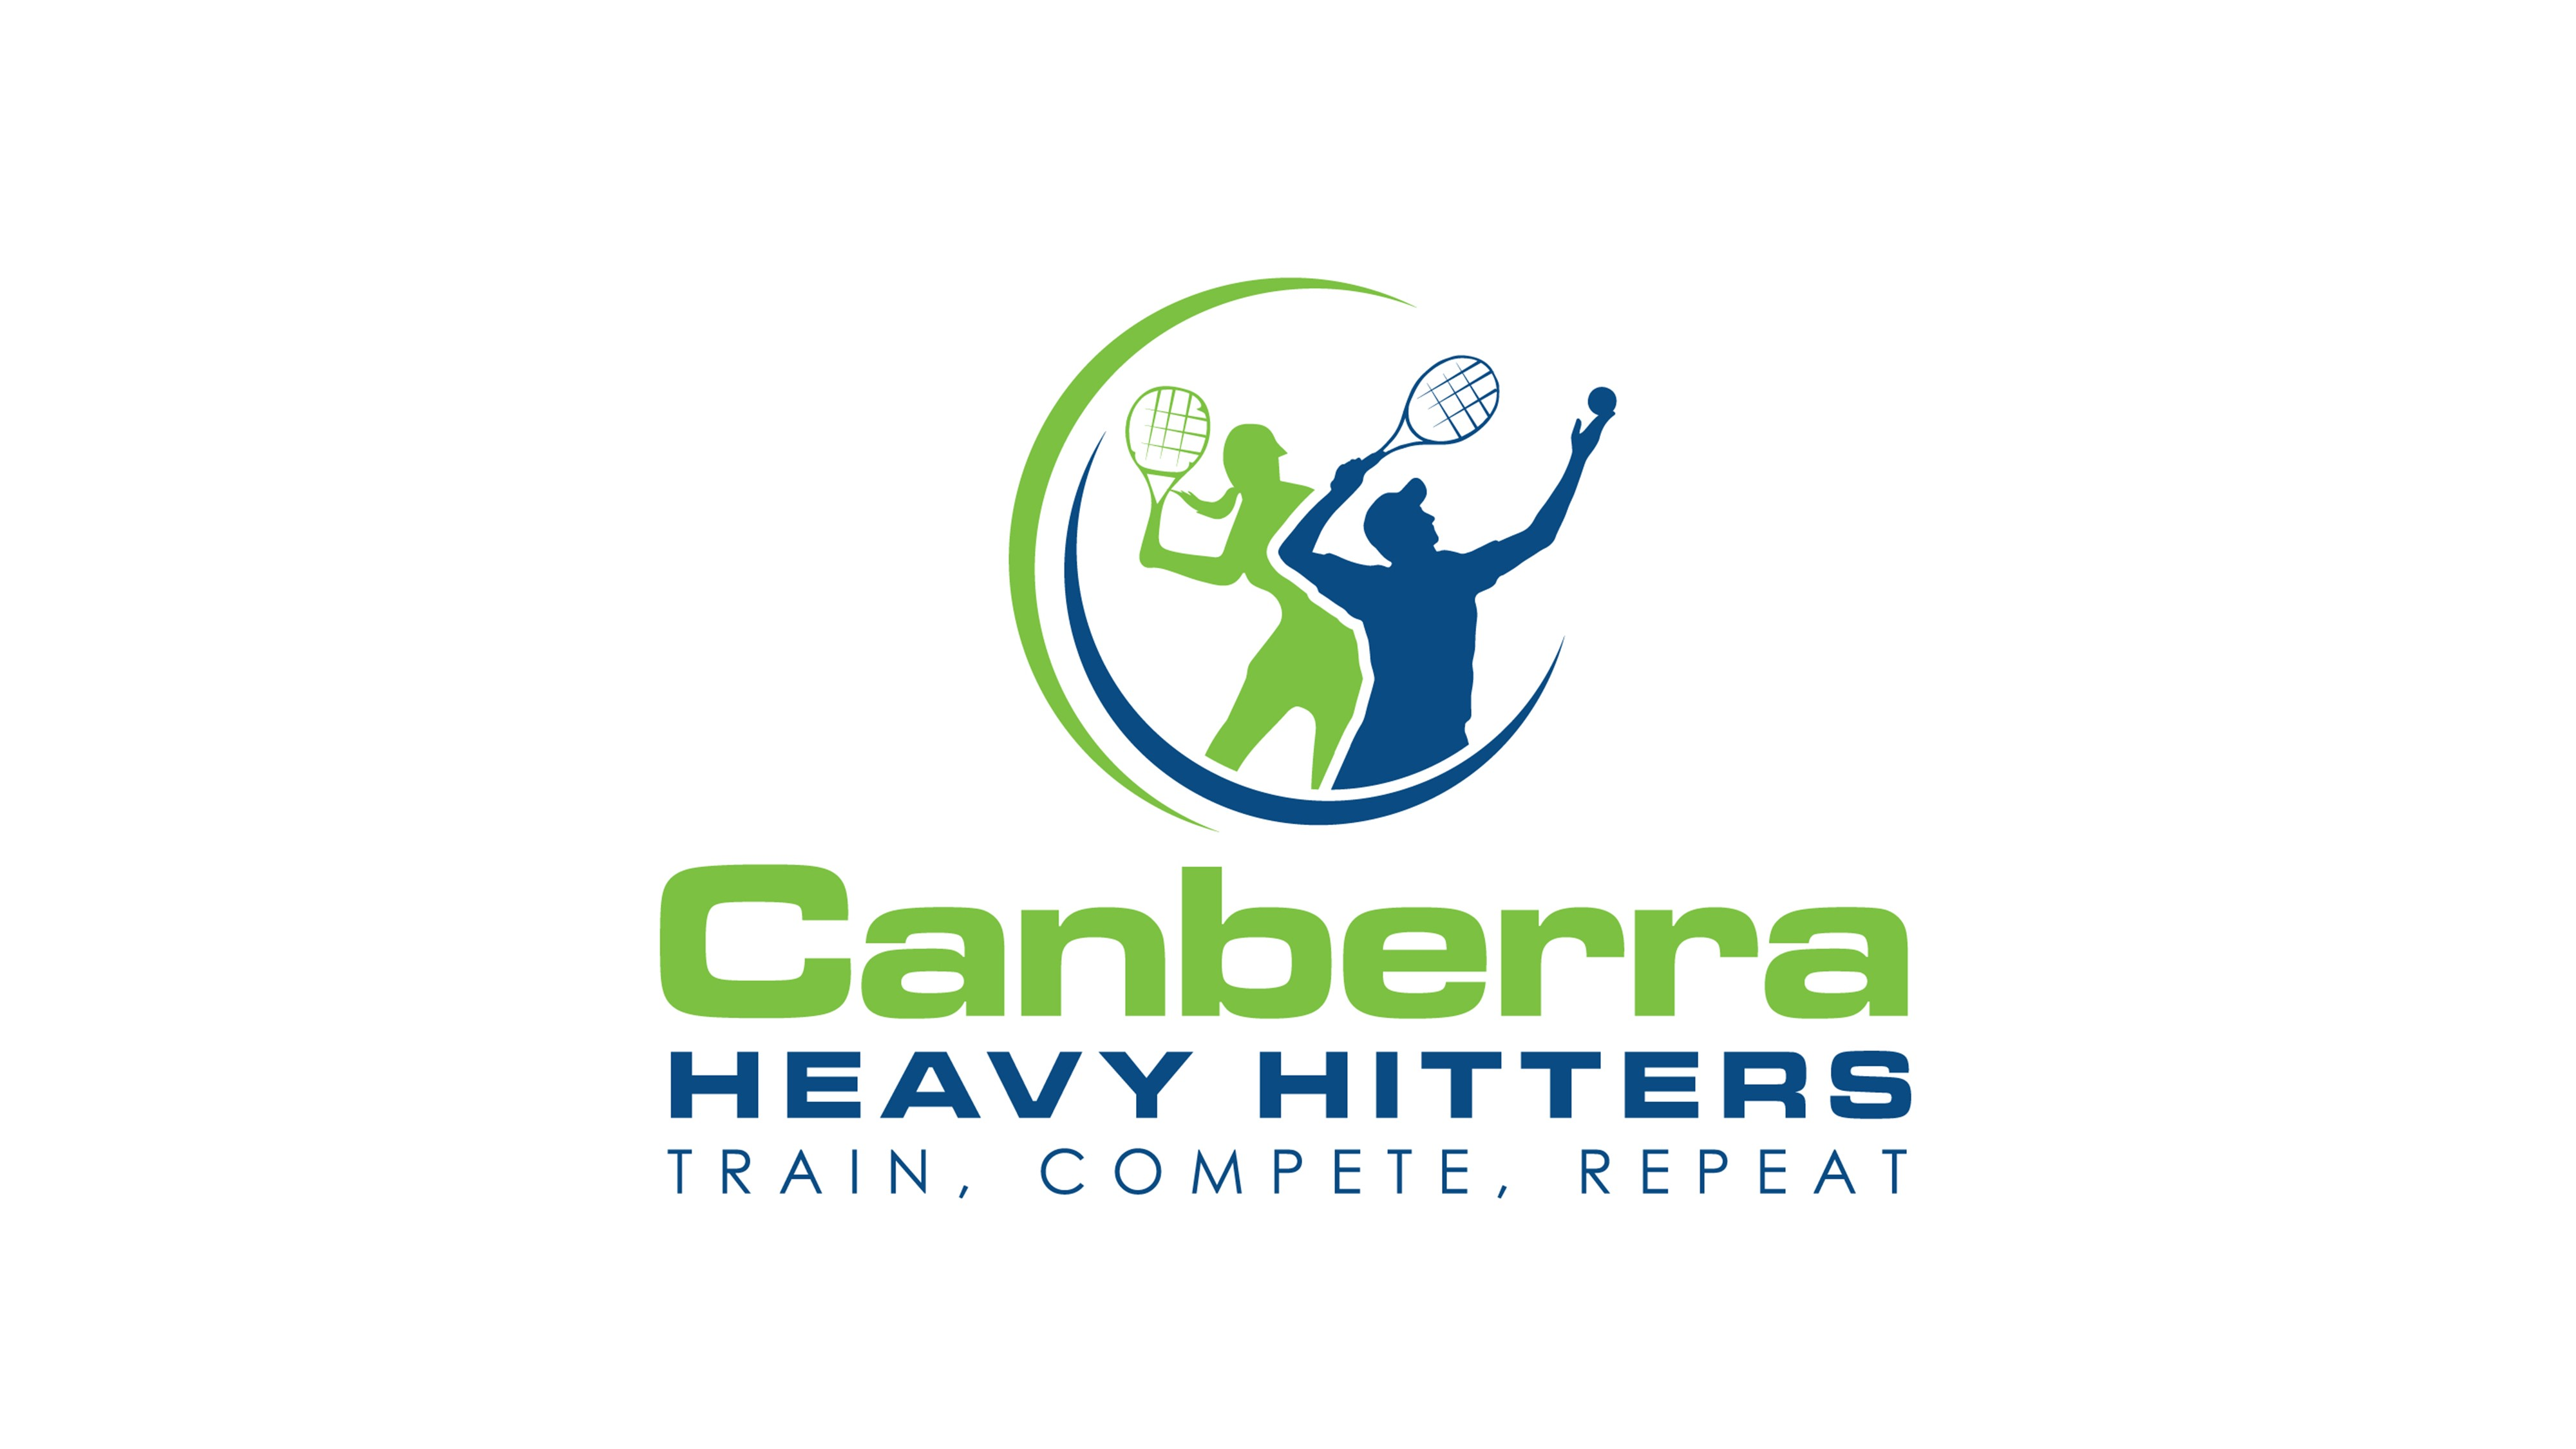 Canberra Heavy Hitters